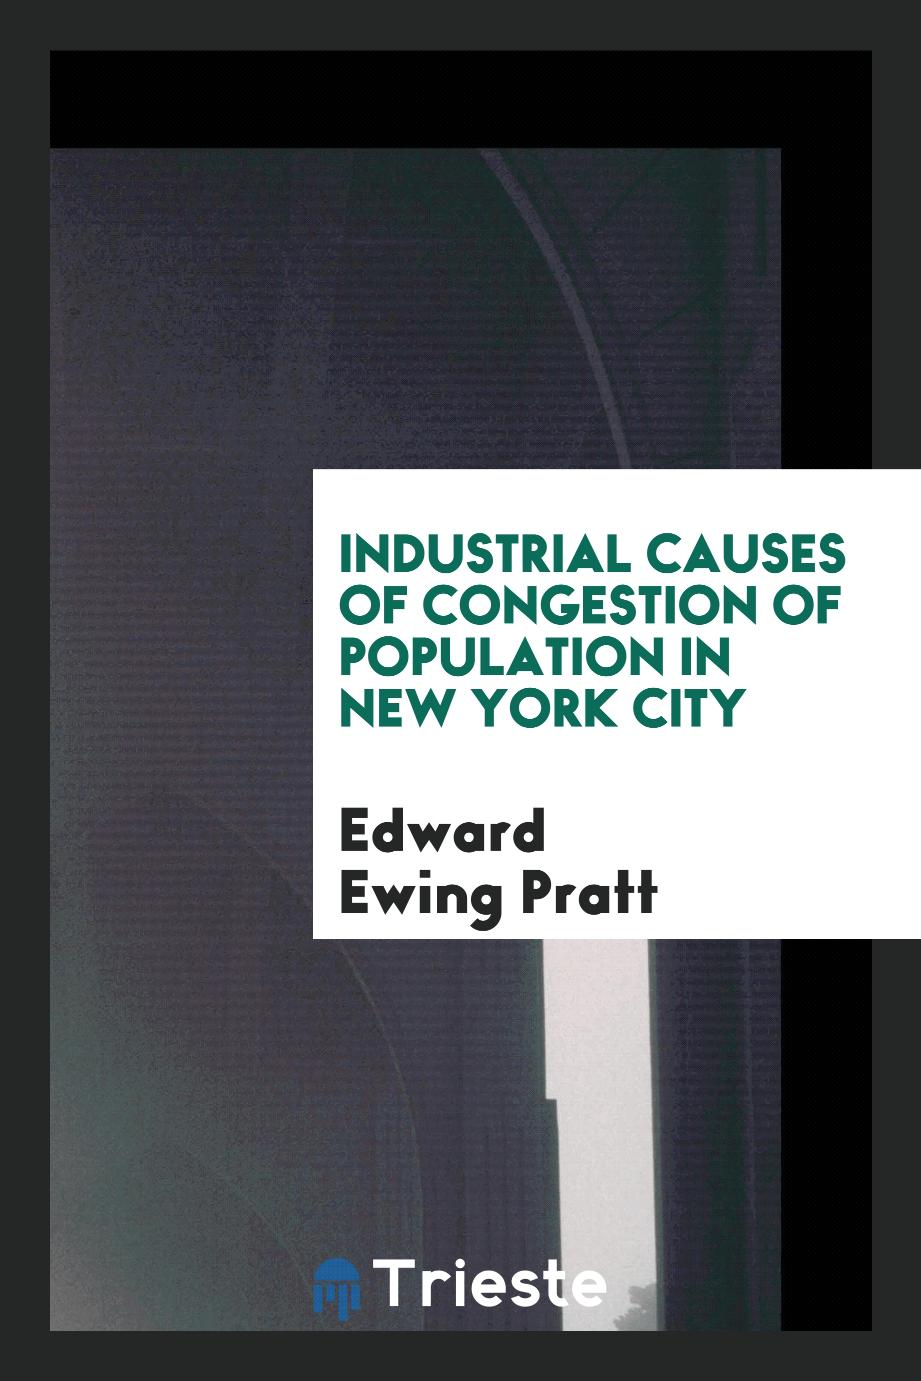 Industrial causes of congestion of population in New York City